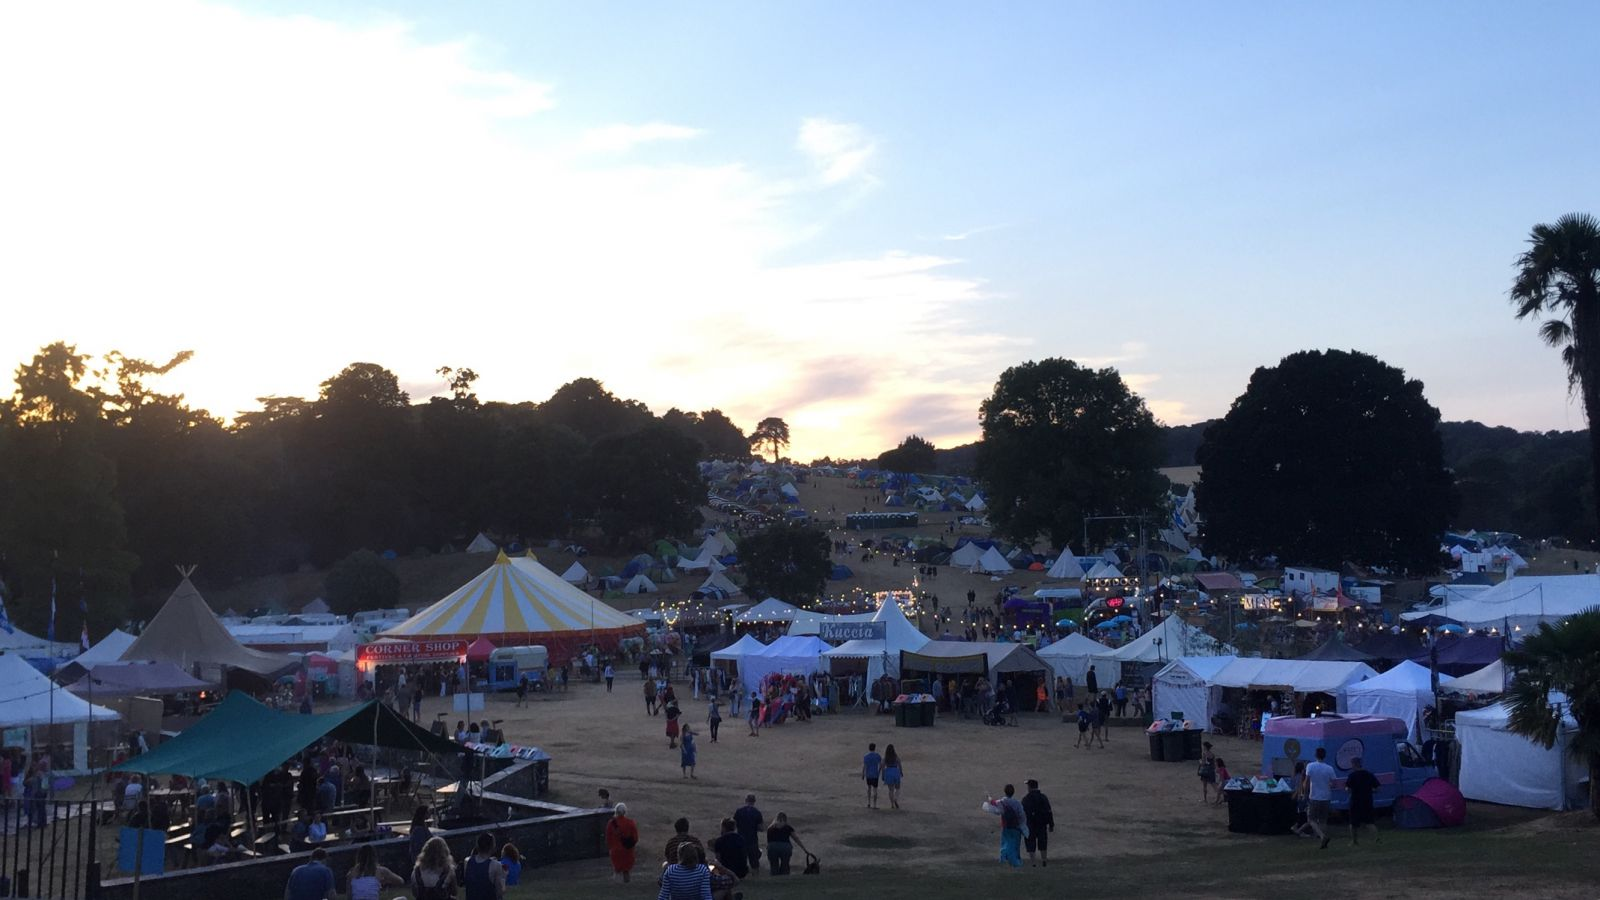 The sun goes down over the beautiful Port Eliot site in St Germans, Cornwall.